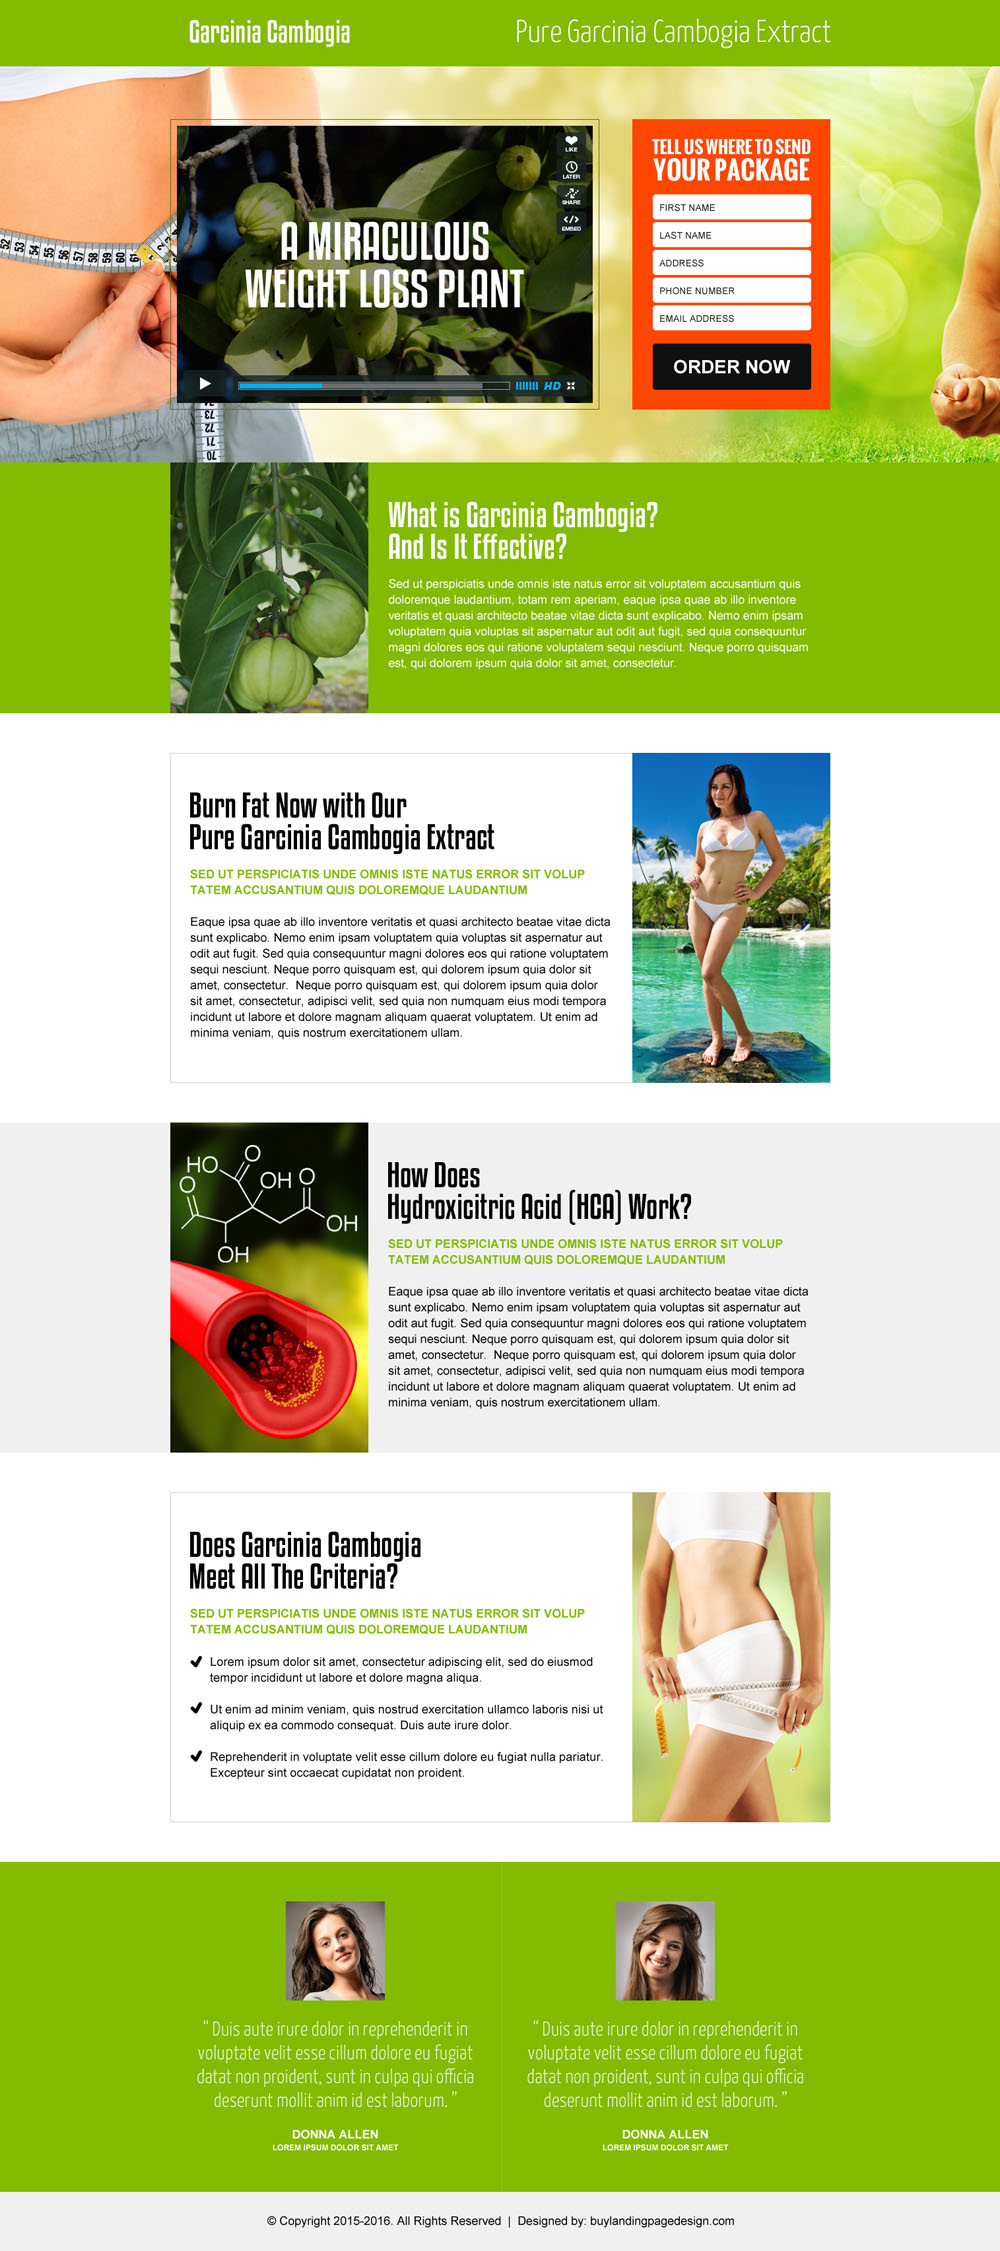 garcinia-cambogia-lead-generation-video-landing-page-design-007